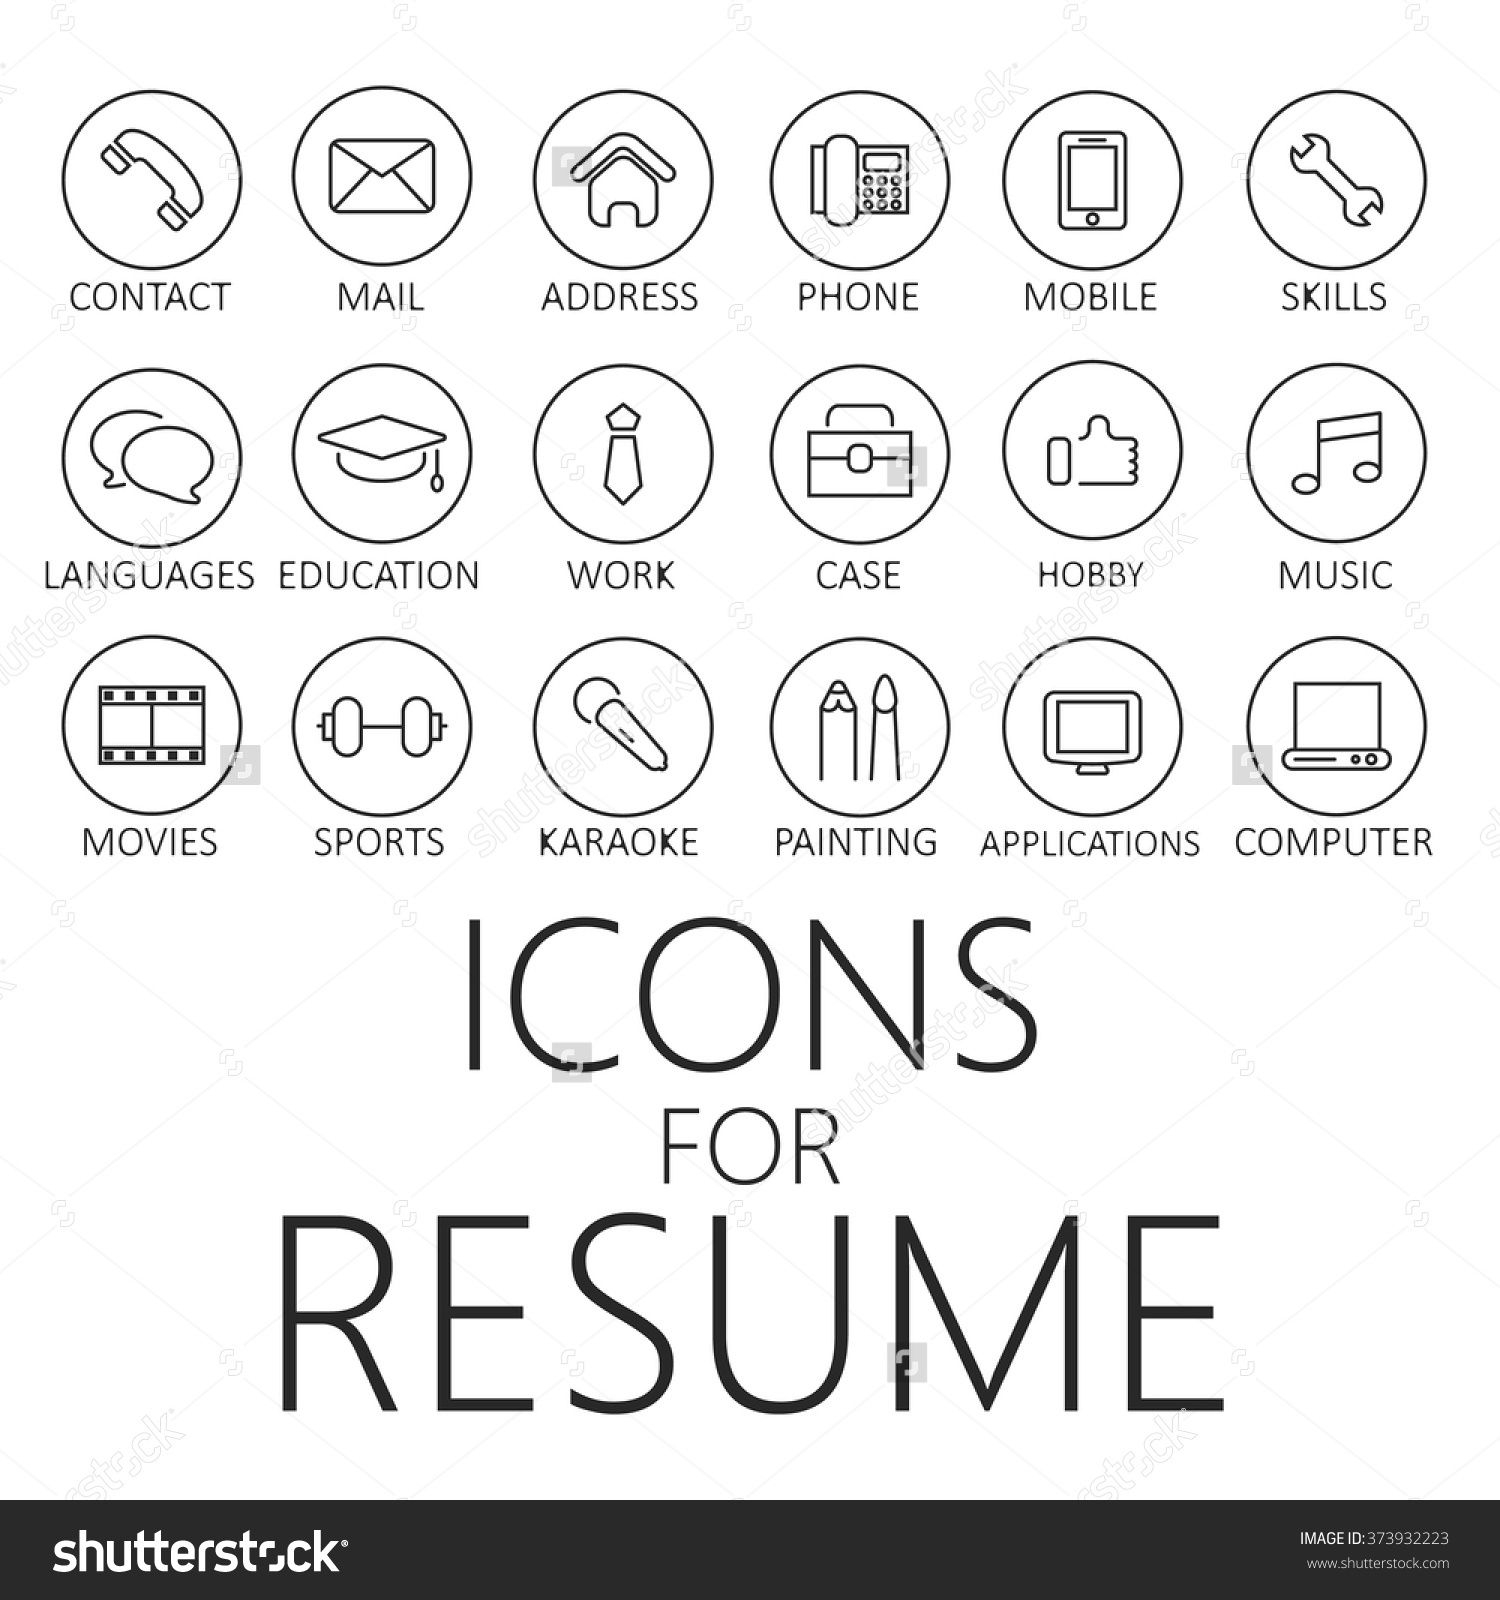 resume icons free download